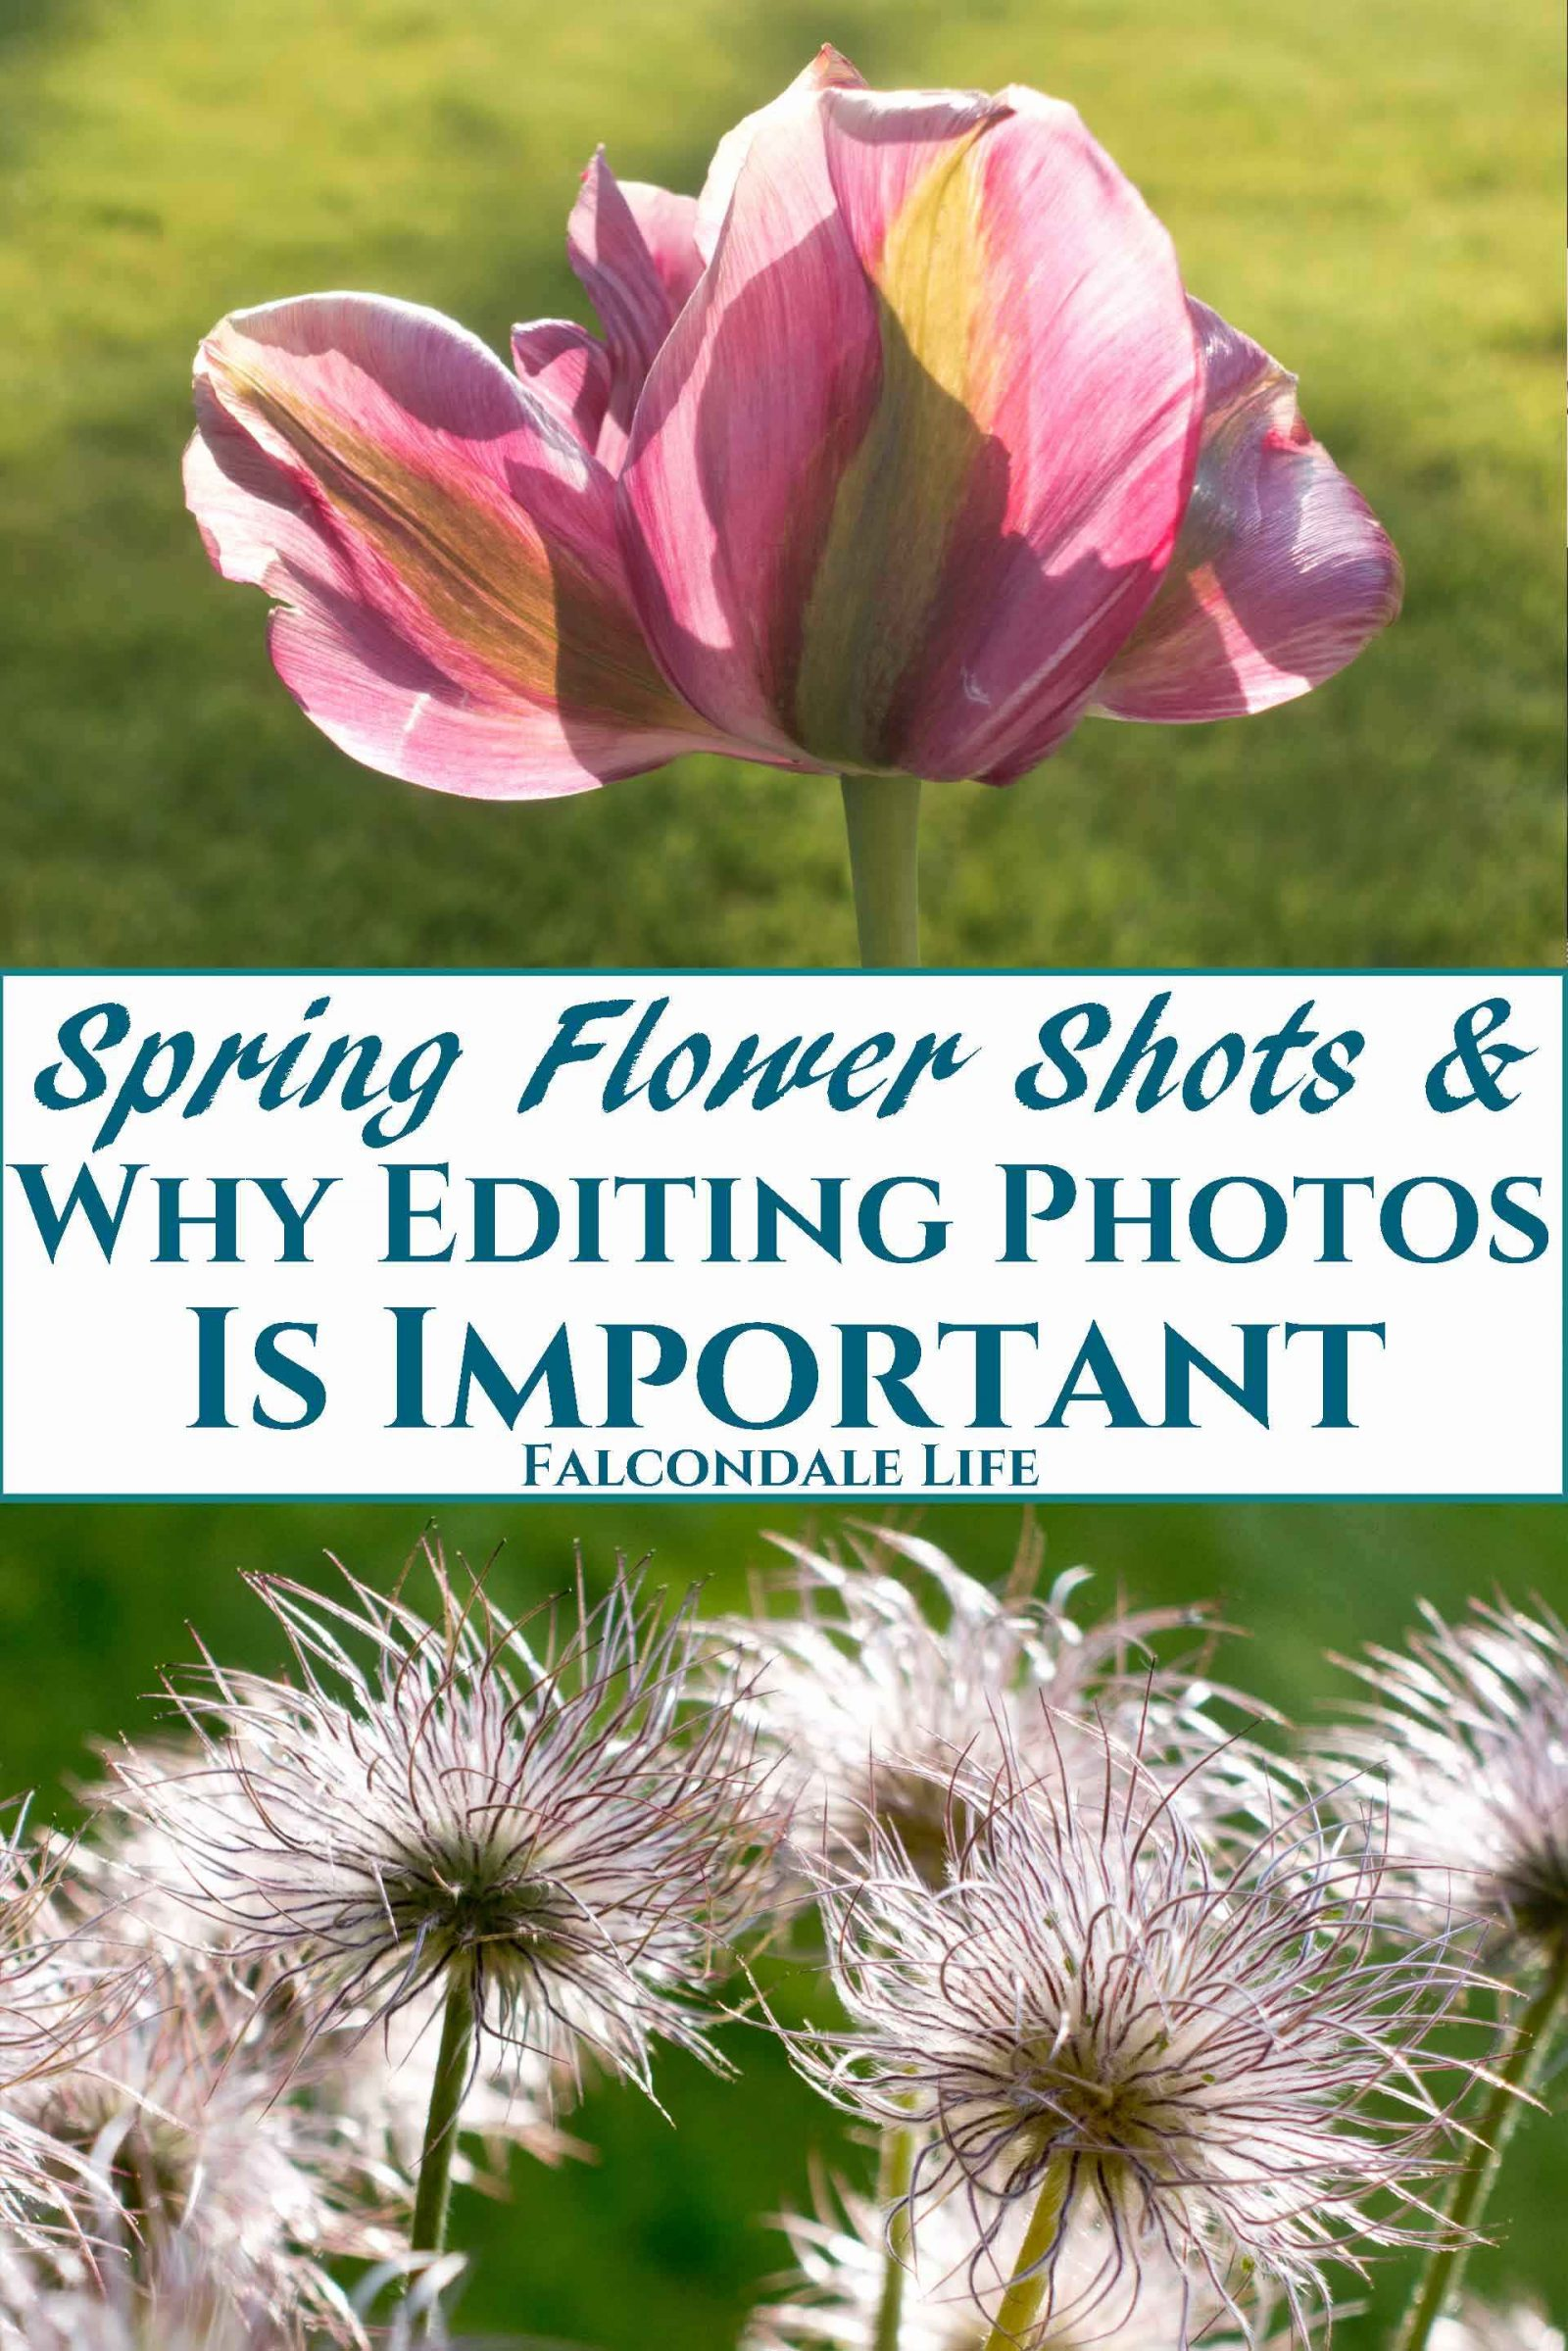 More Spring Flower Shots and Why Editing Photos is Important